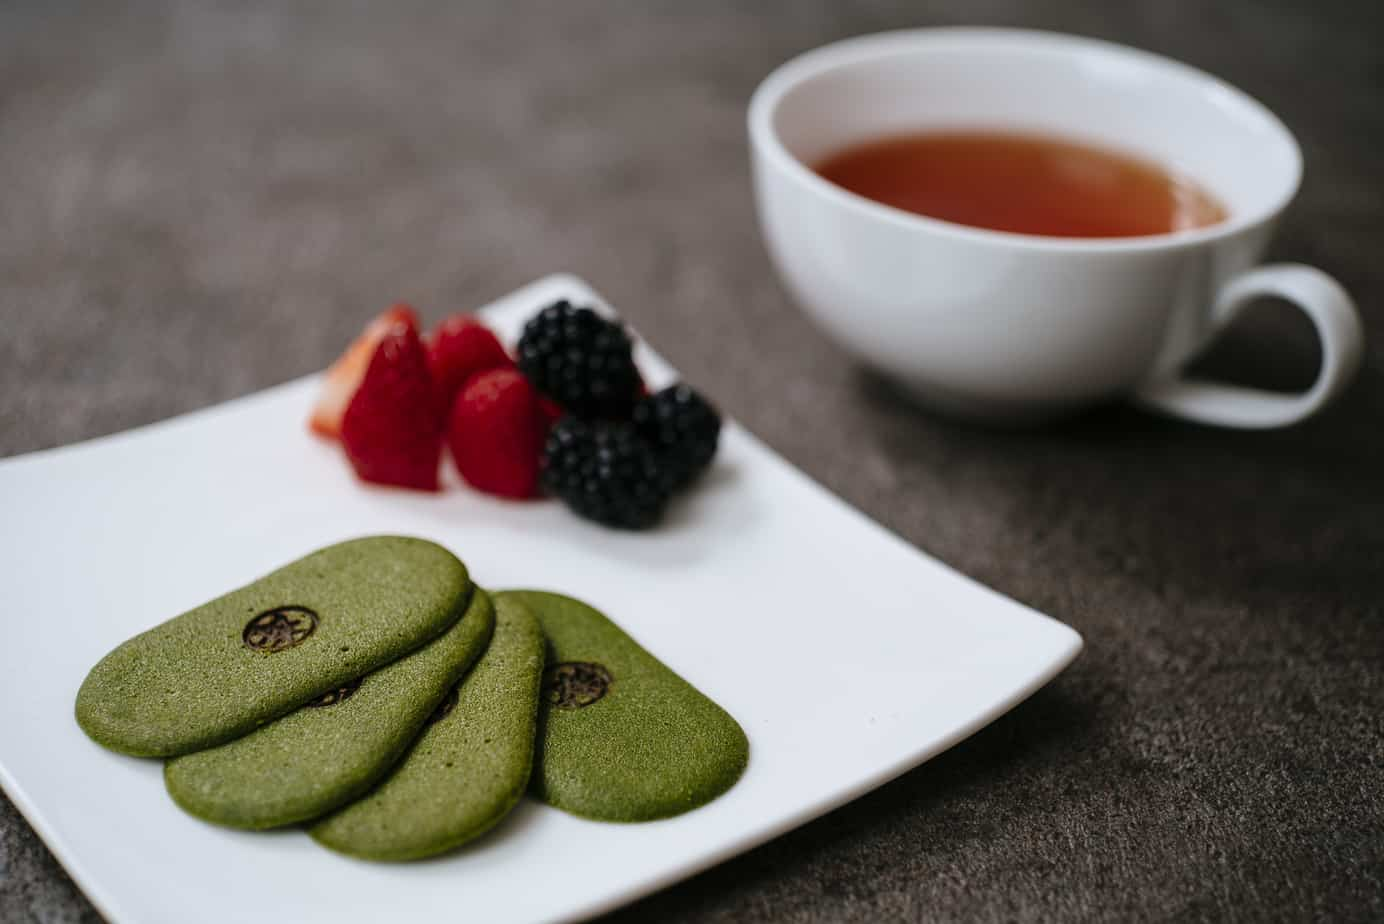 Maru CHA CHA Matcha Green Tea Biscuits Are Now on Sale in the U.S.